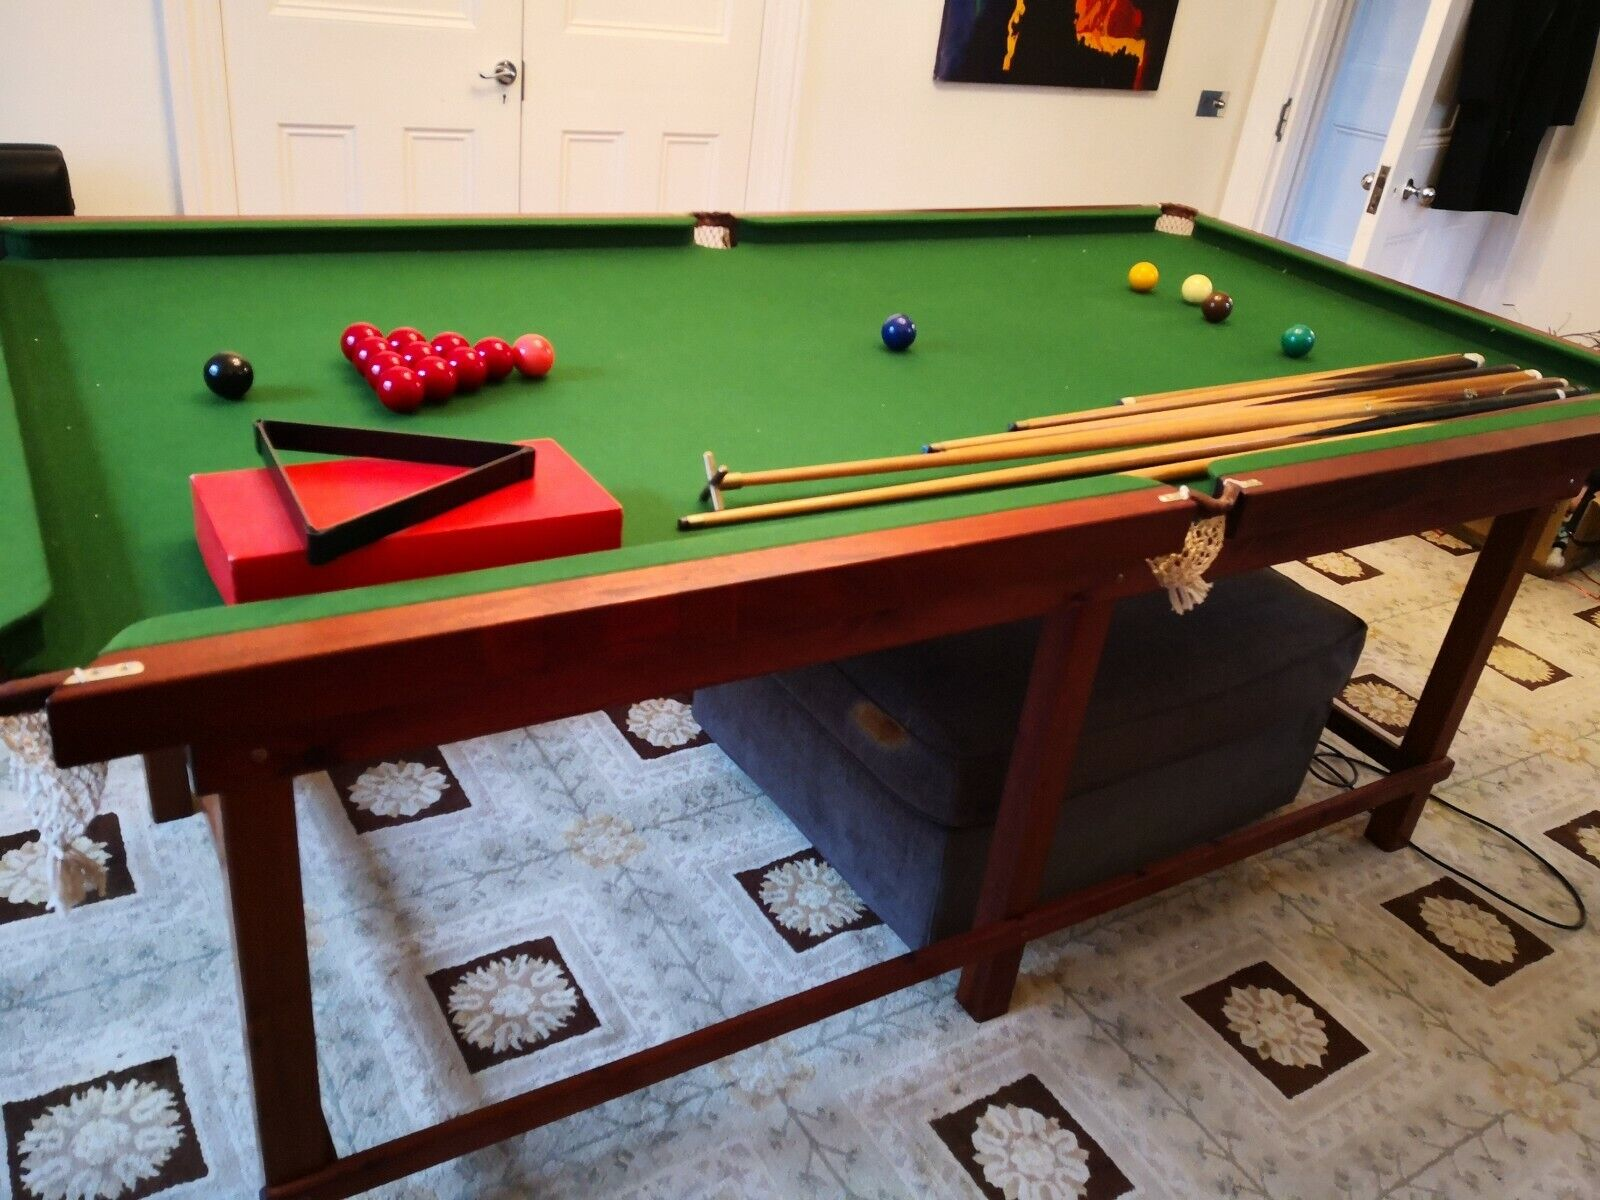 Half size snooker table for christmas. With balls, cues, etc. 1.16m * 2.23m